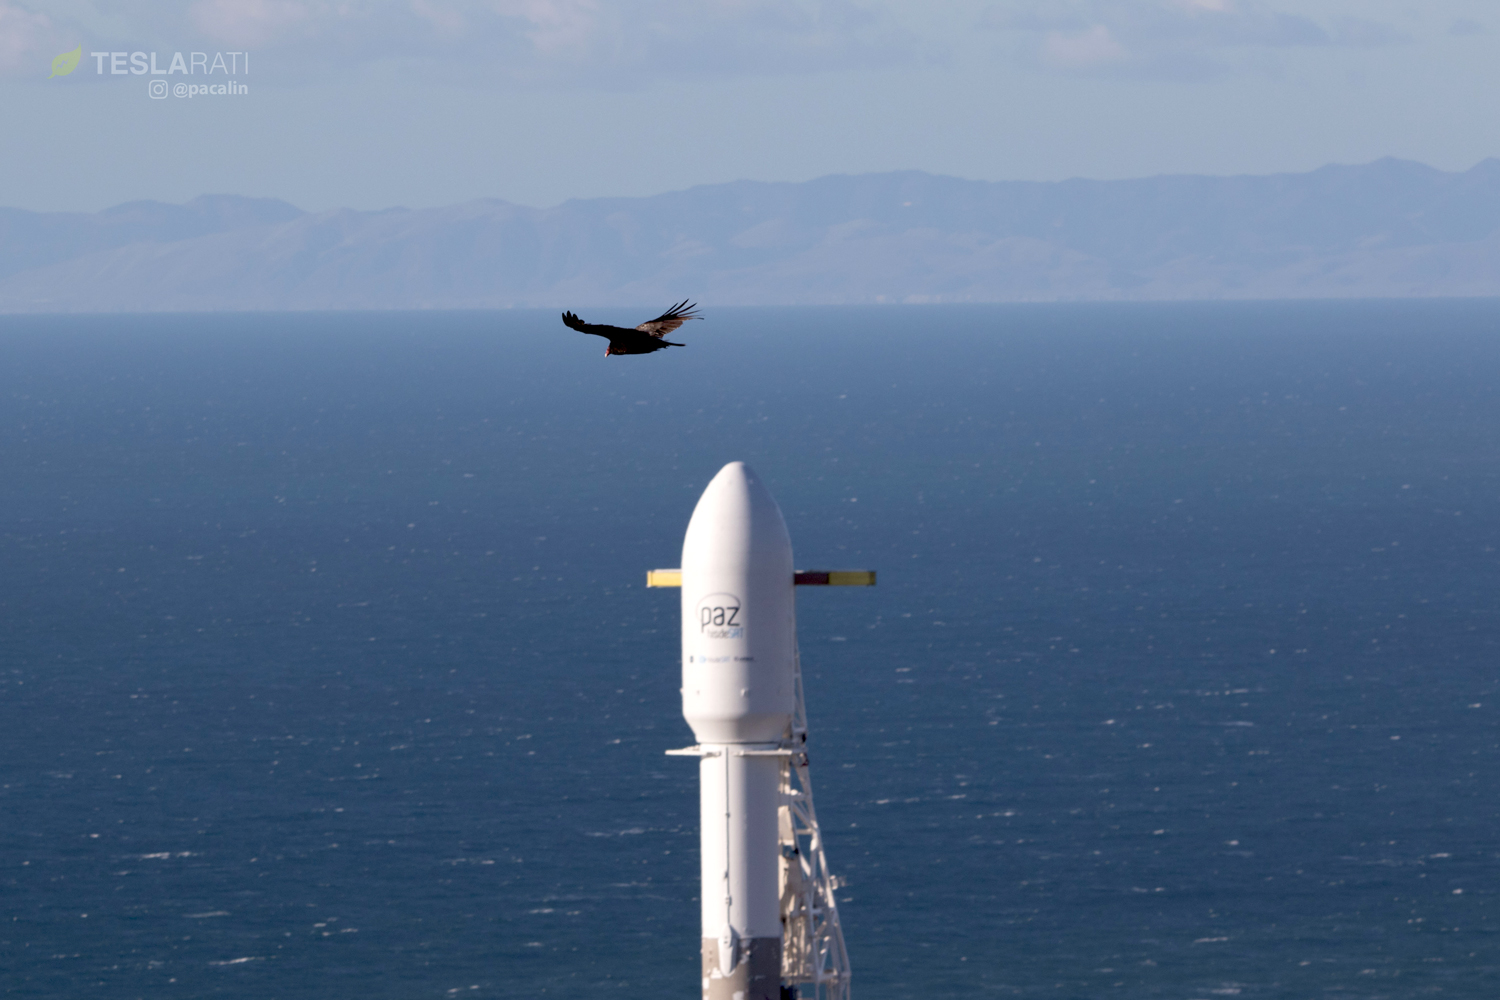 Falcon 9 and PAZ with vulture (Pauline Acalin)